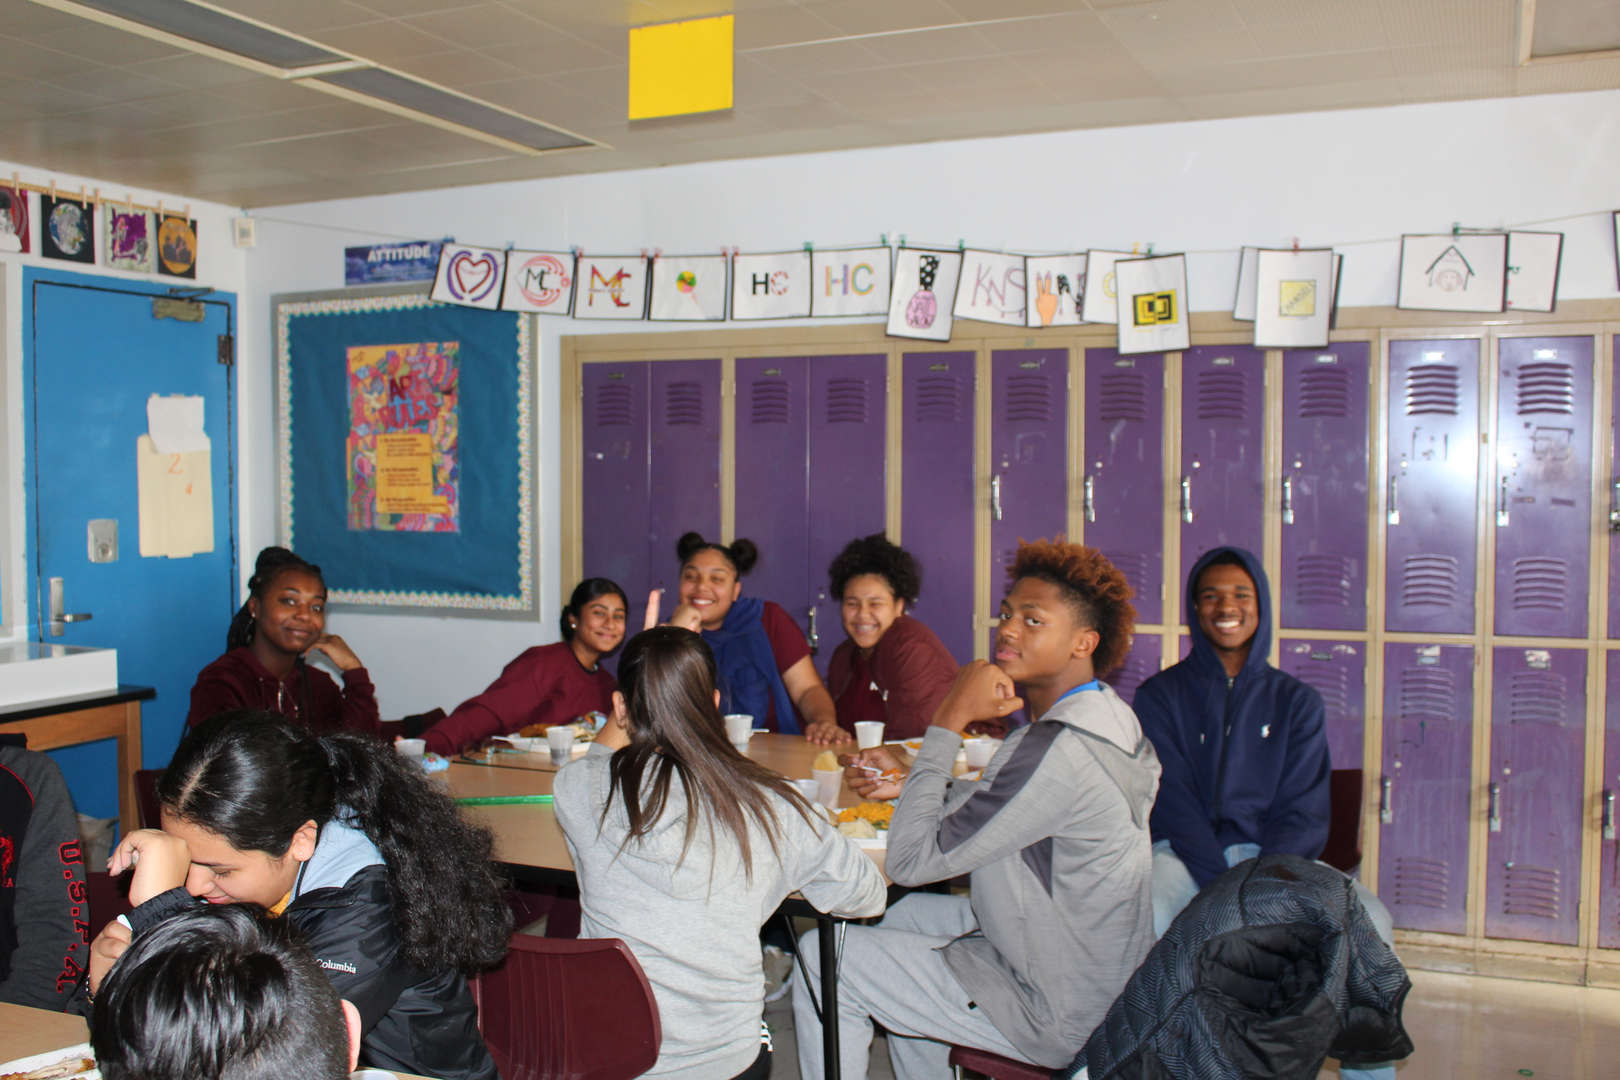 Students room 348 Thanksgiving Feast 2017